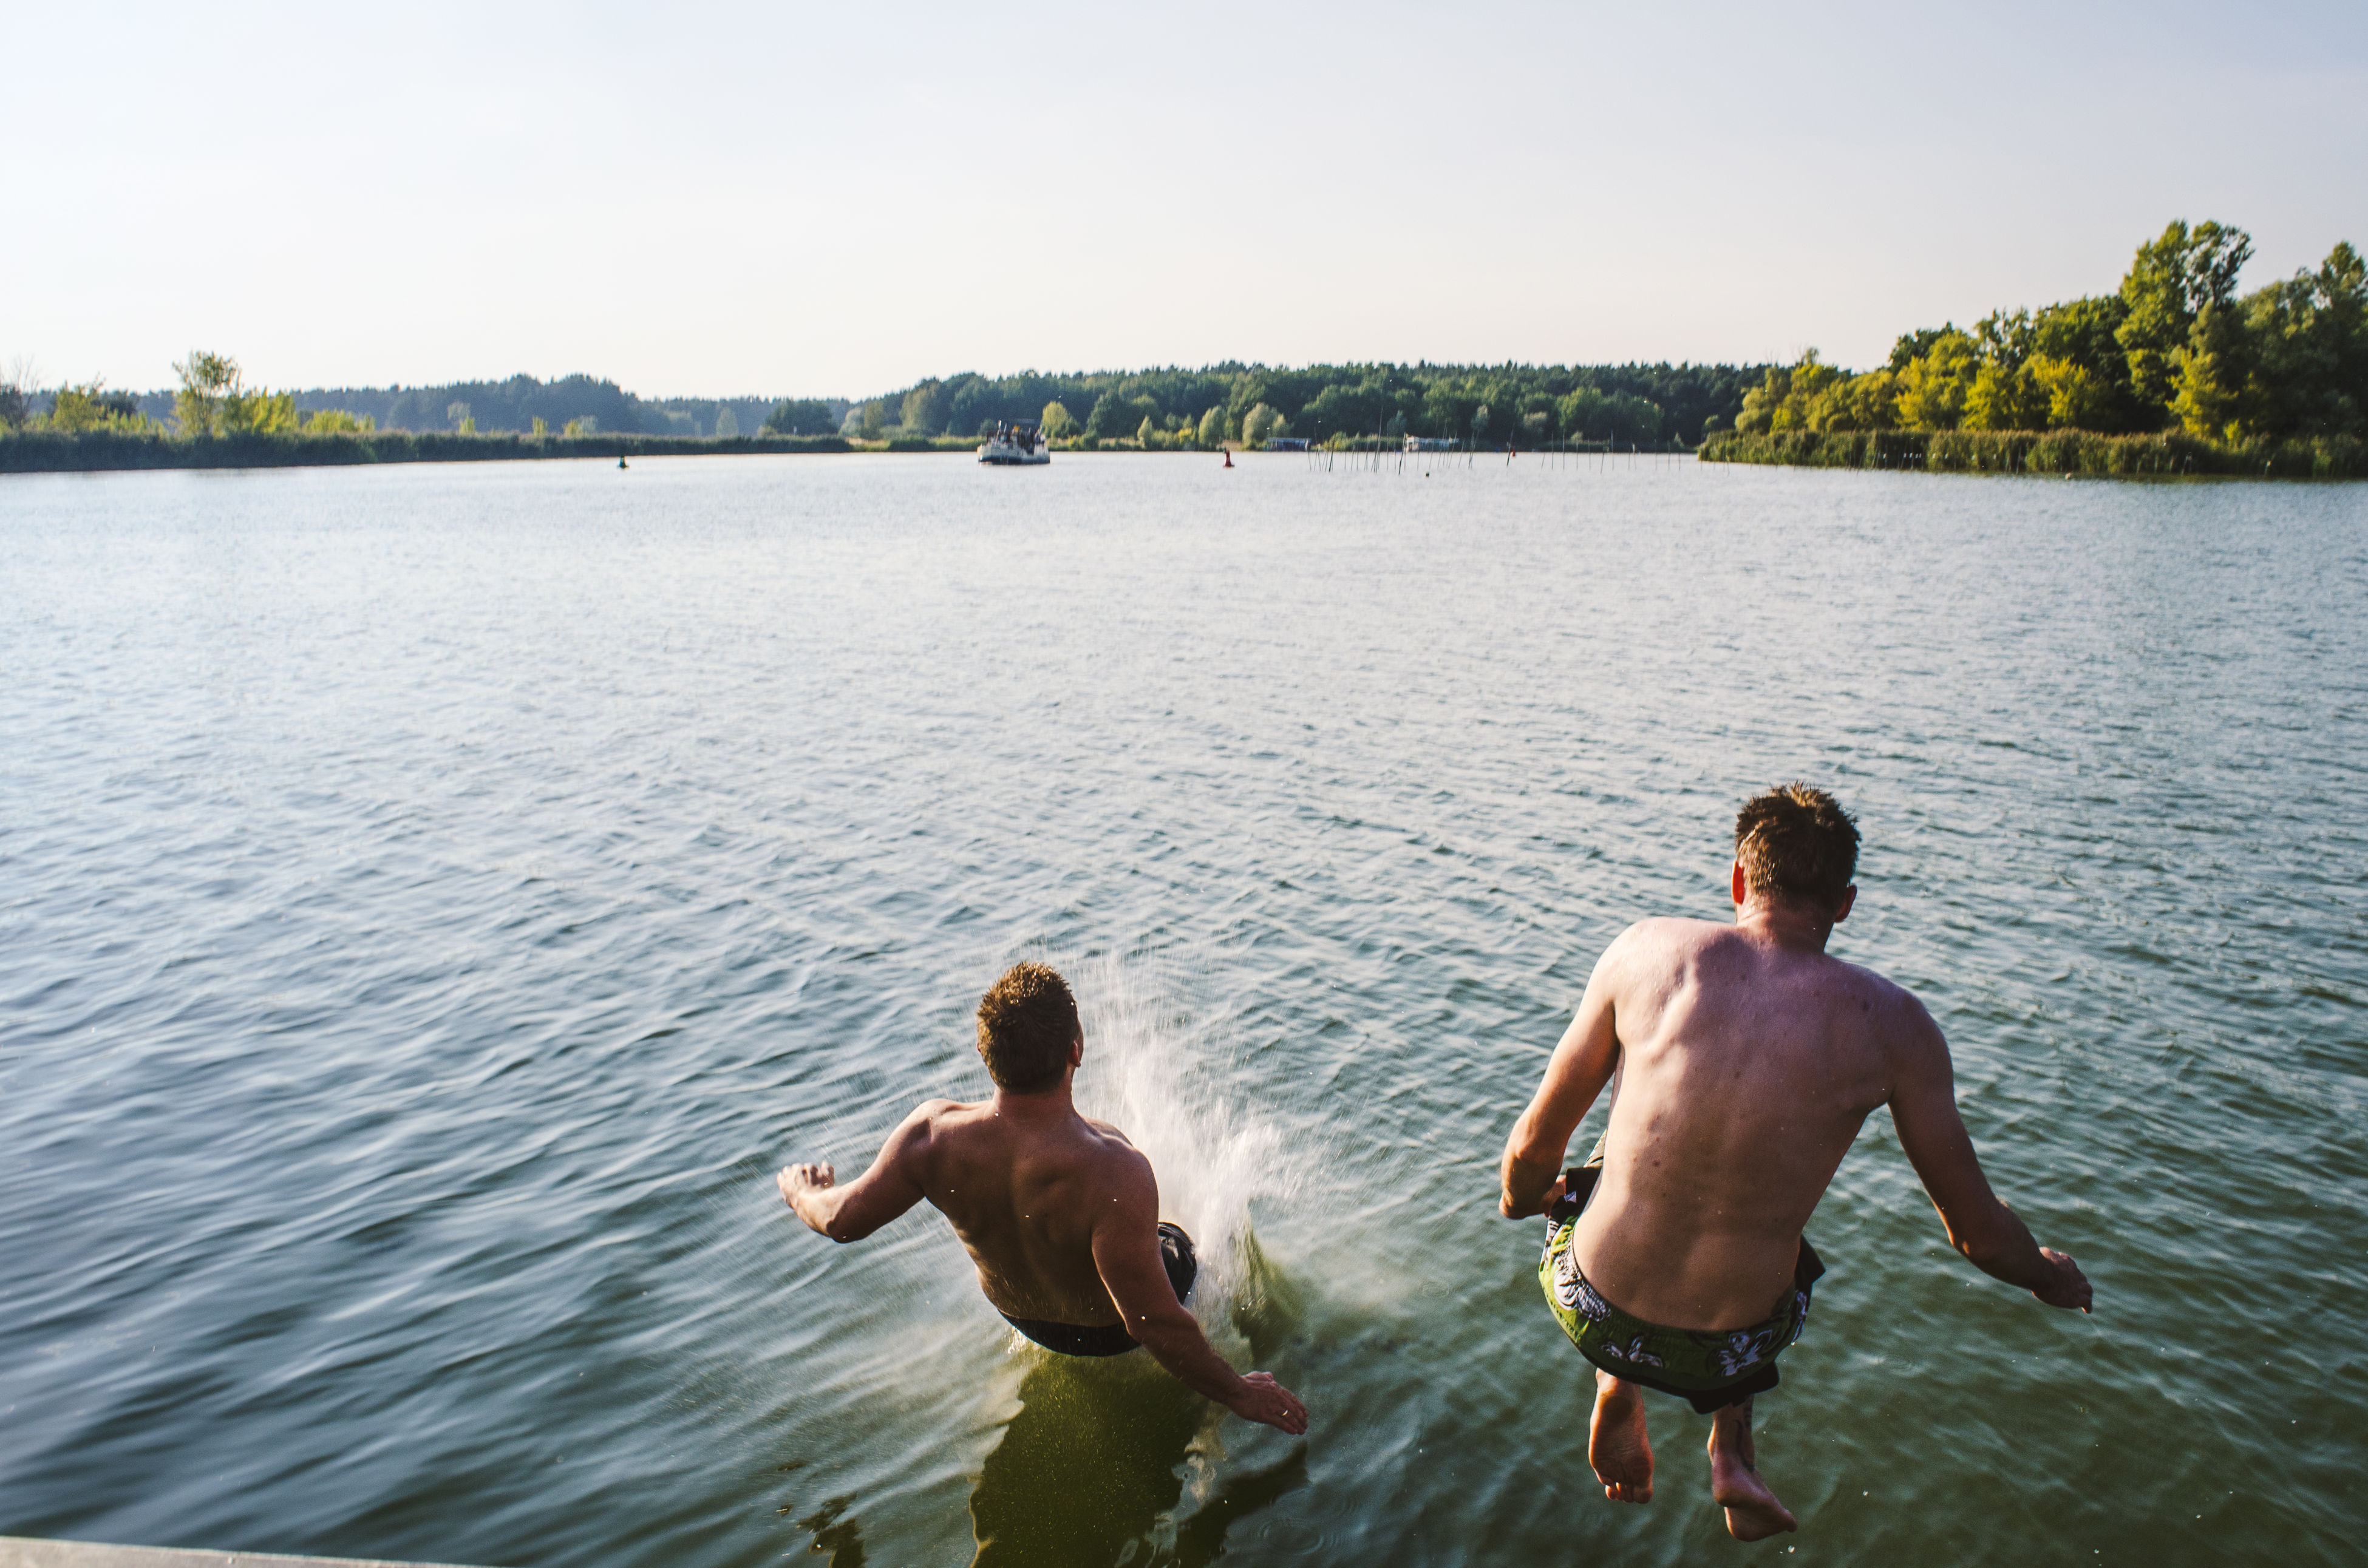 water, rear view, leisure activity, outdoors, togetherness, day, real people, men, two people, lake, vacations, swimming, shirtless, nature, young adult, sky, adult, people